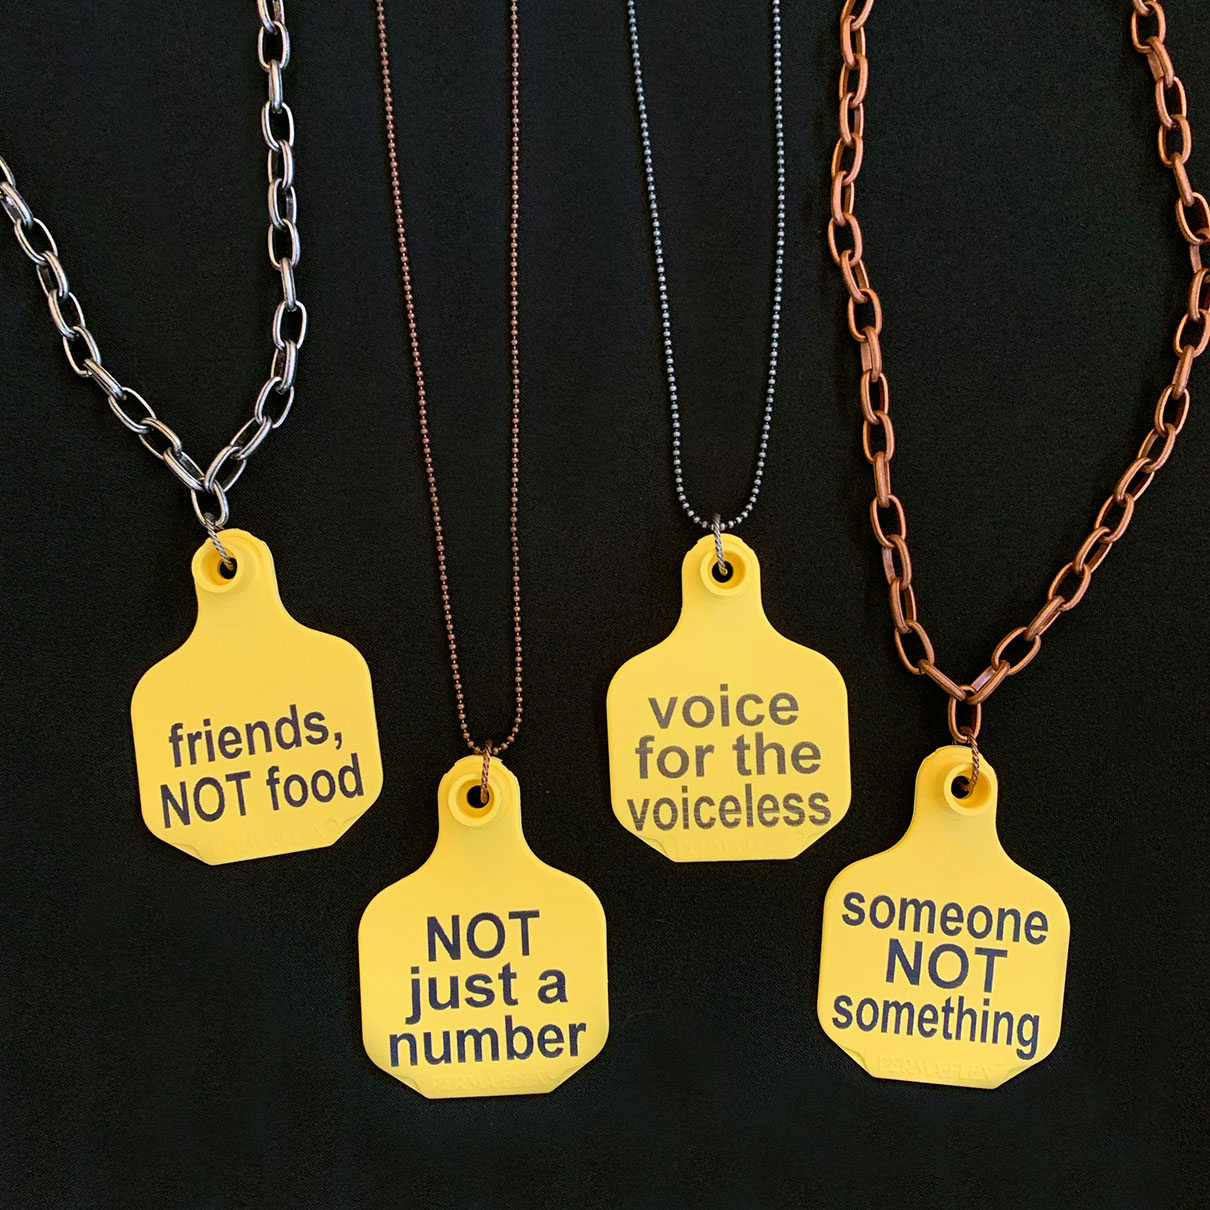 Ear Tag Necklaces. Friends Not Food. Someone Not Something. Voice for the Voiceless. Not just a number.